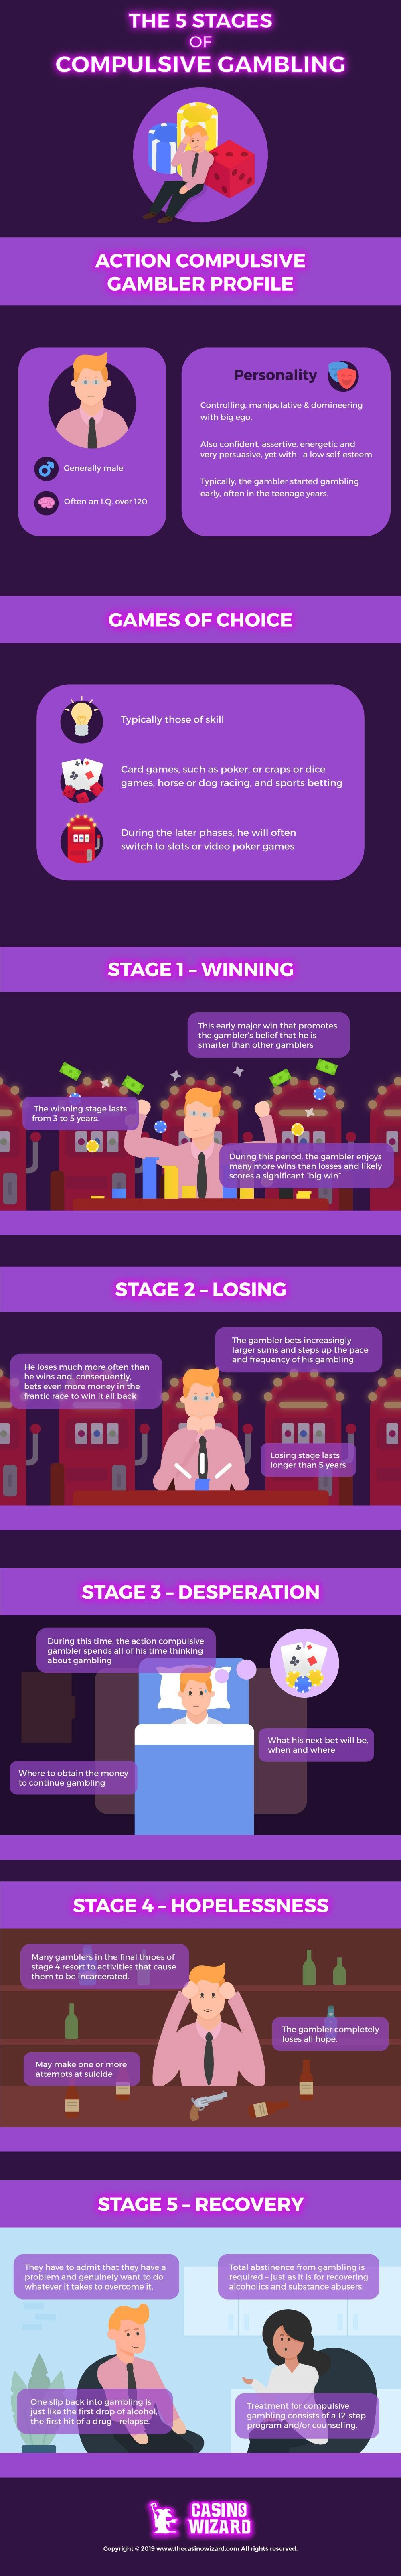 The 5 Stage of Compulsive Gambling #infographic